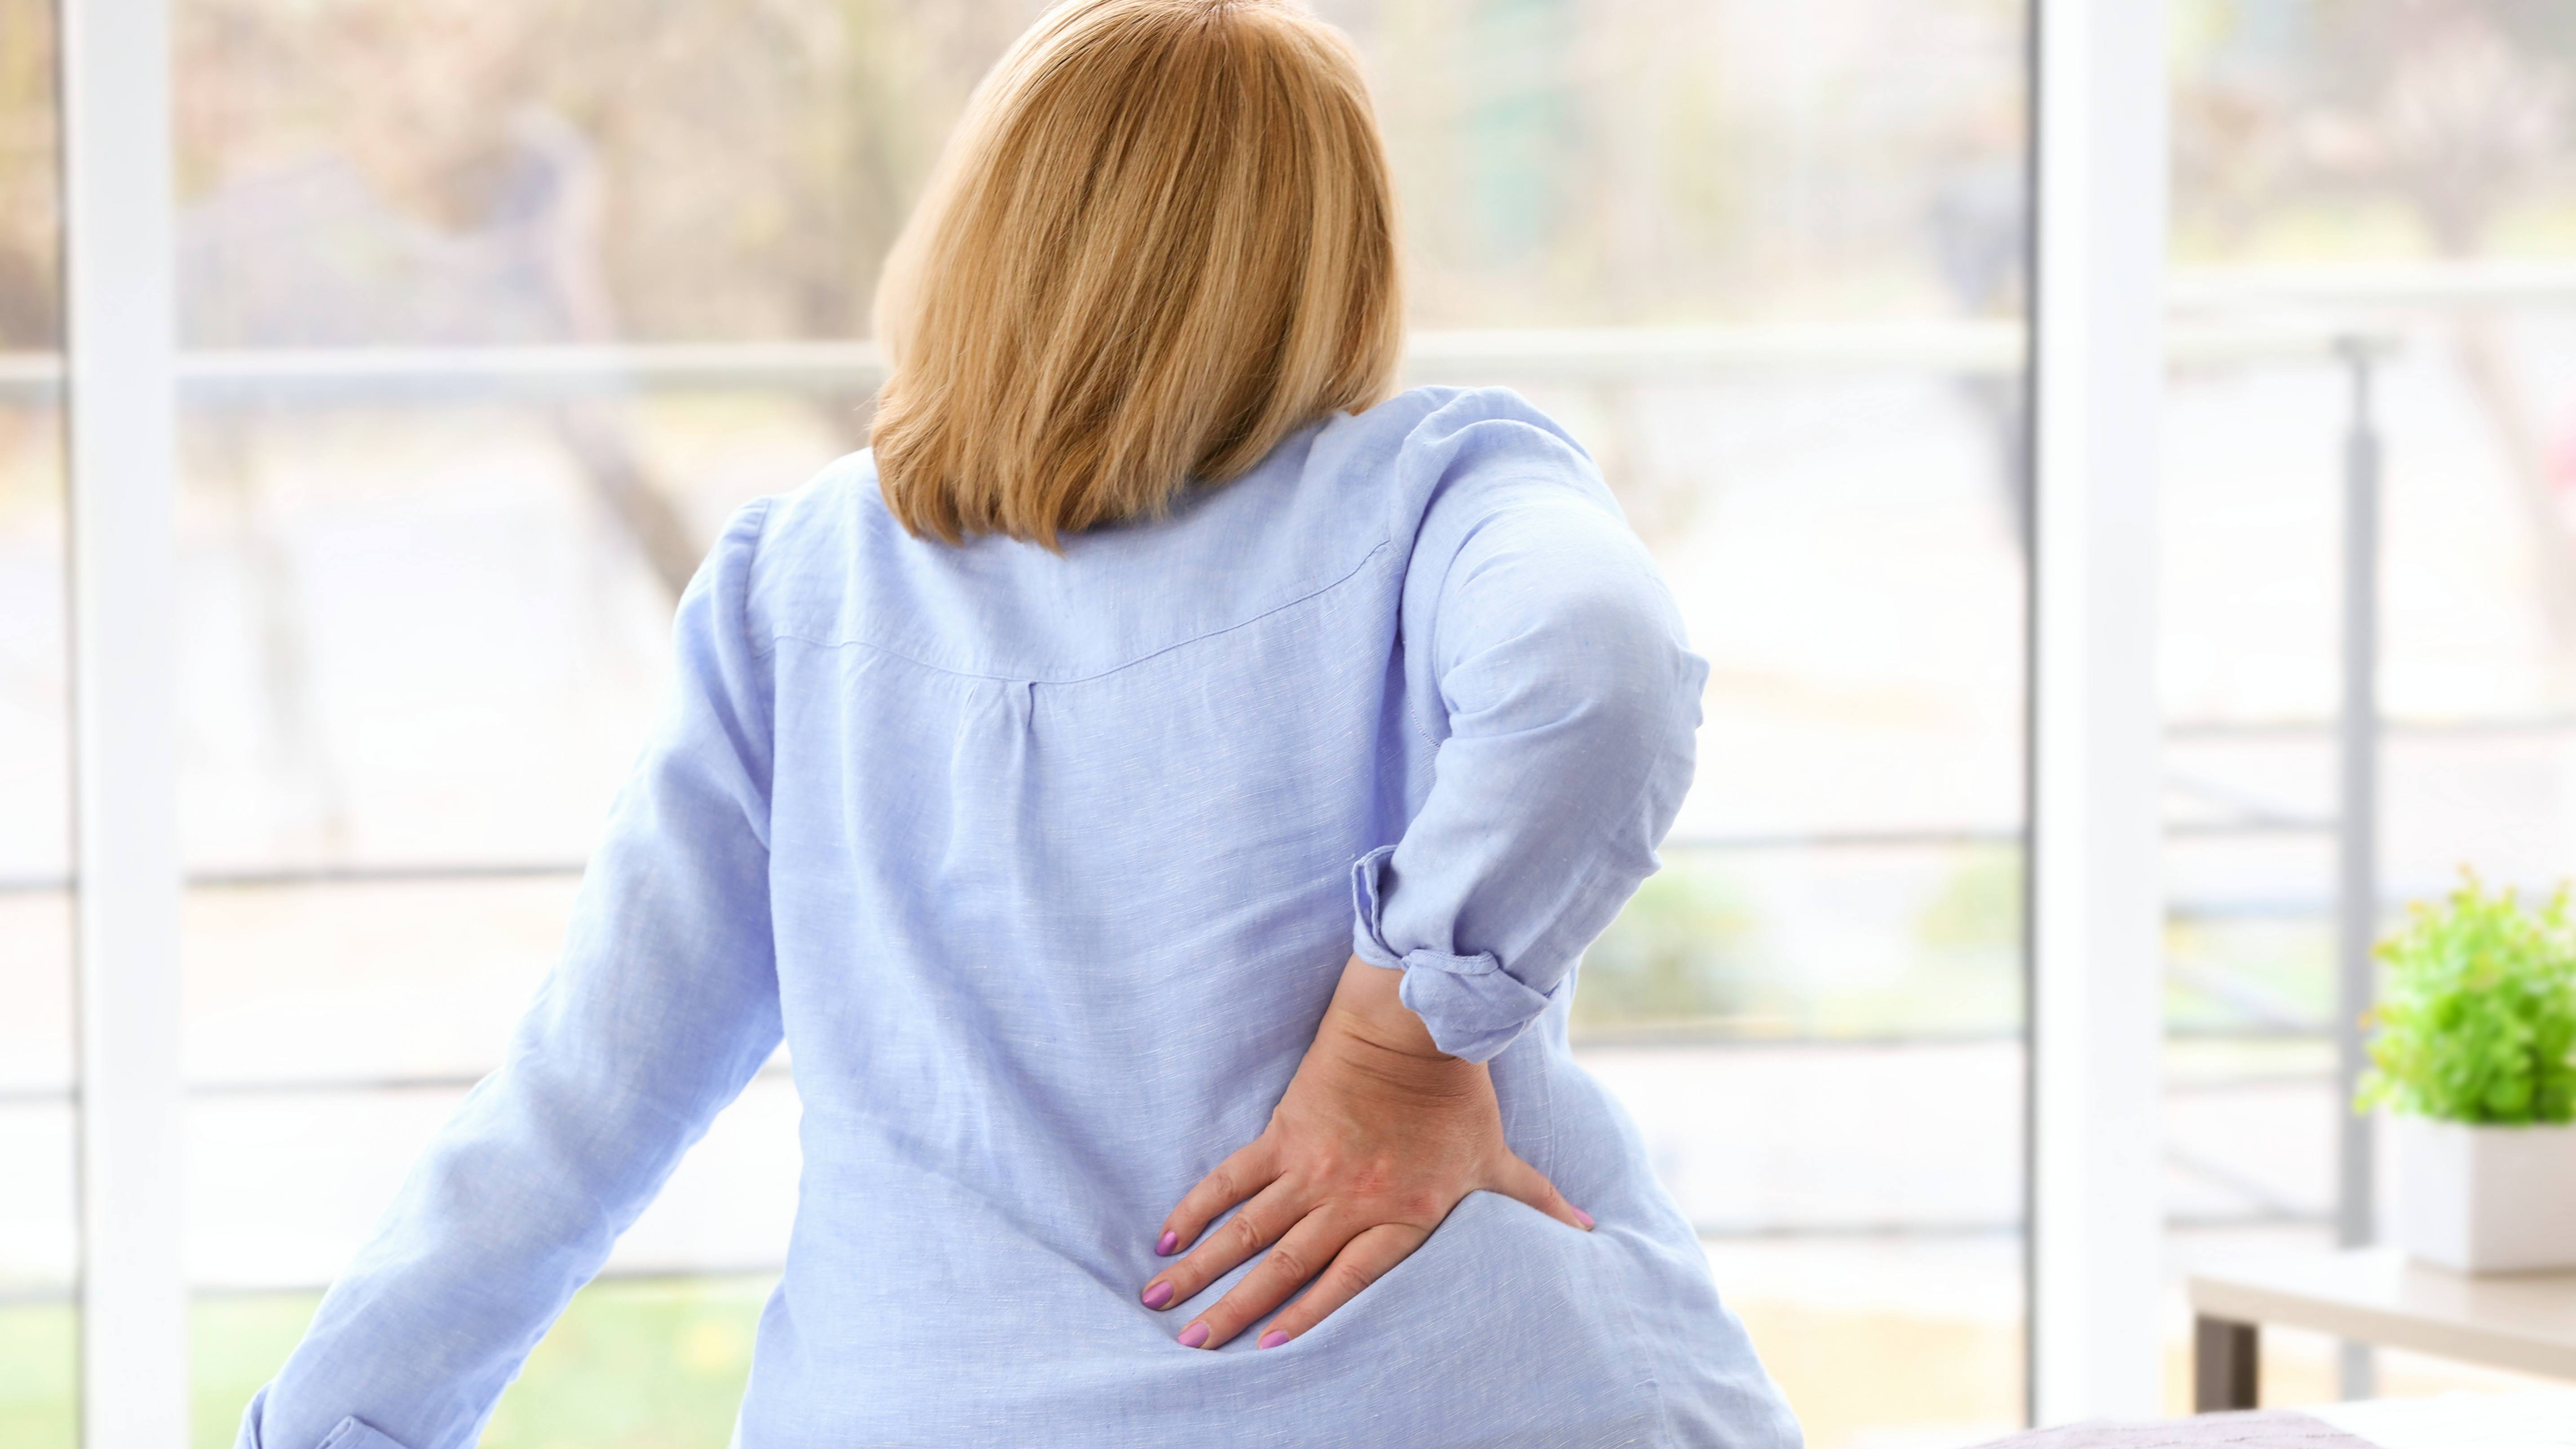 New research shows spinal stimulation may work better than medication for long-term pain reduction